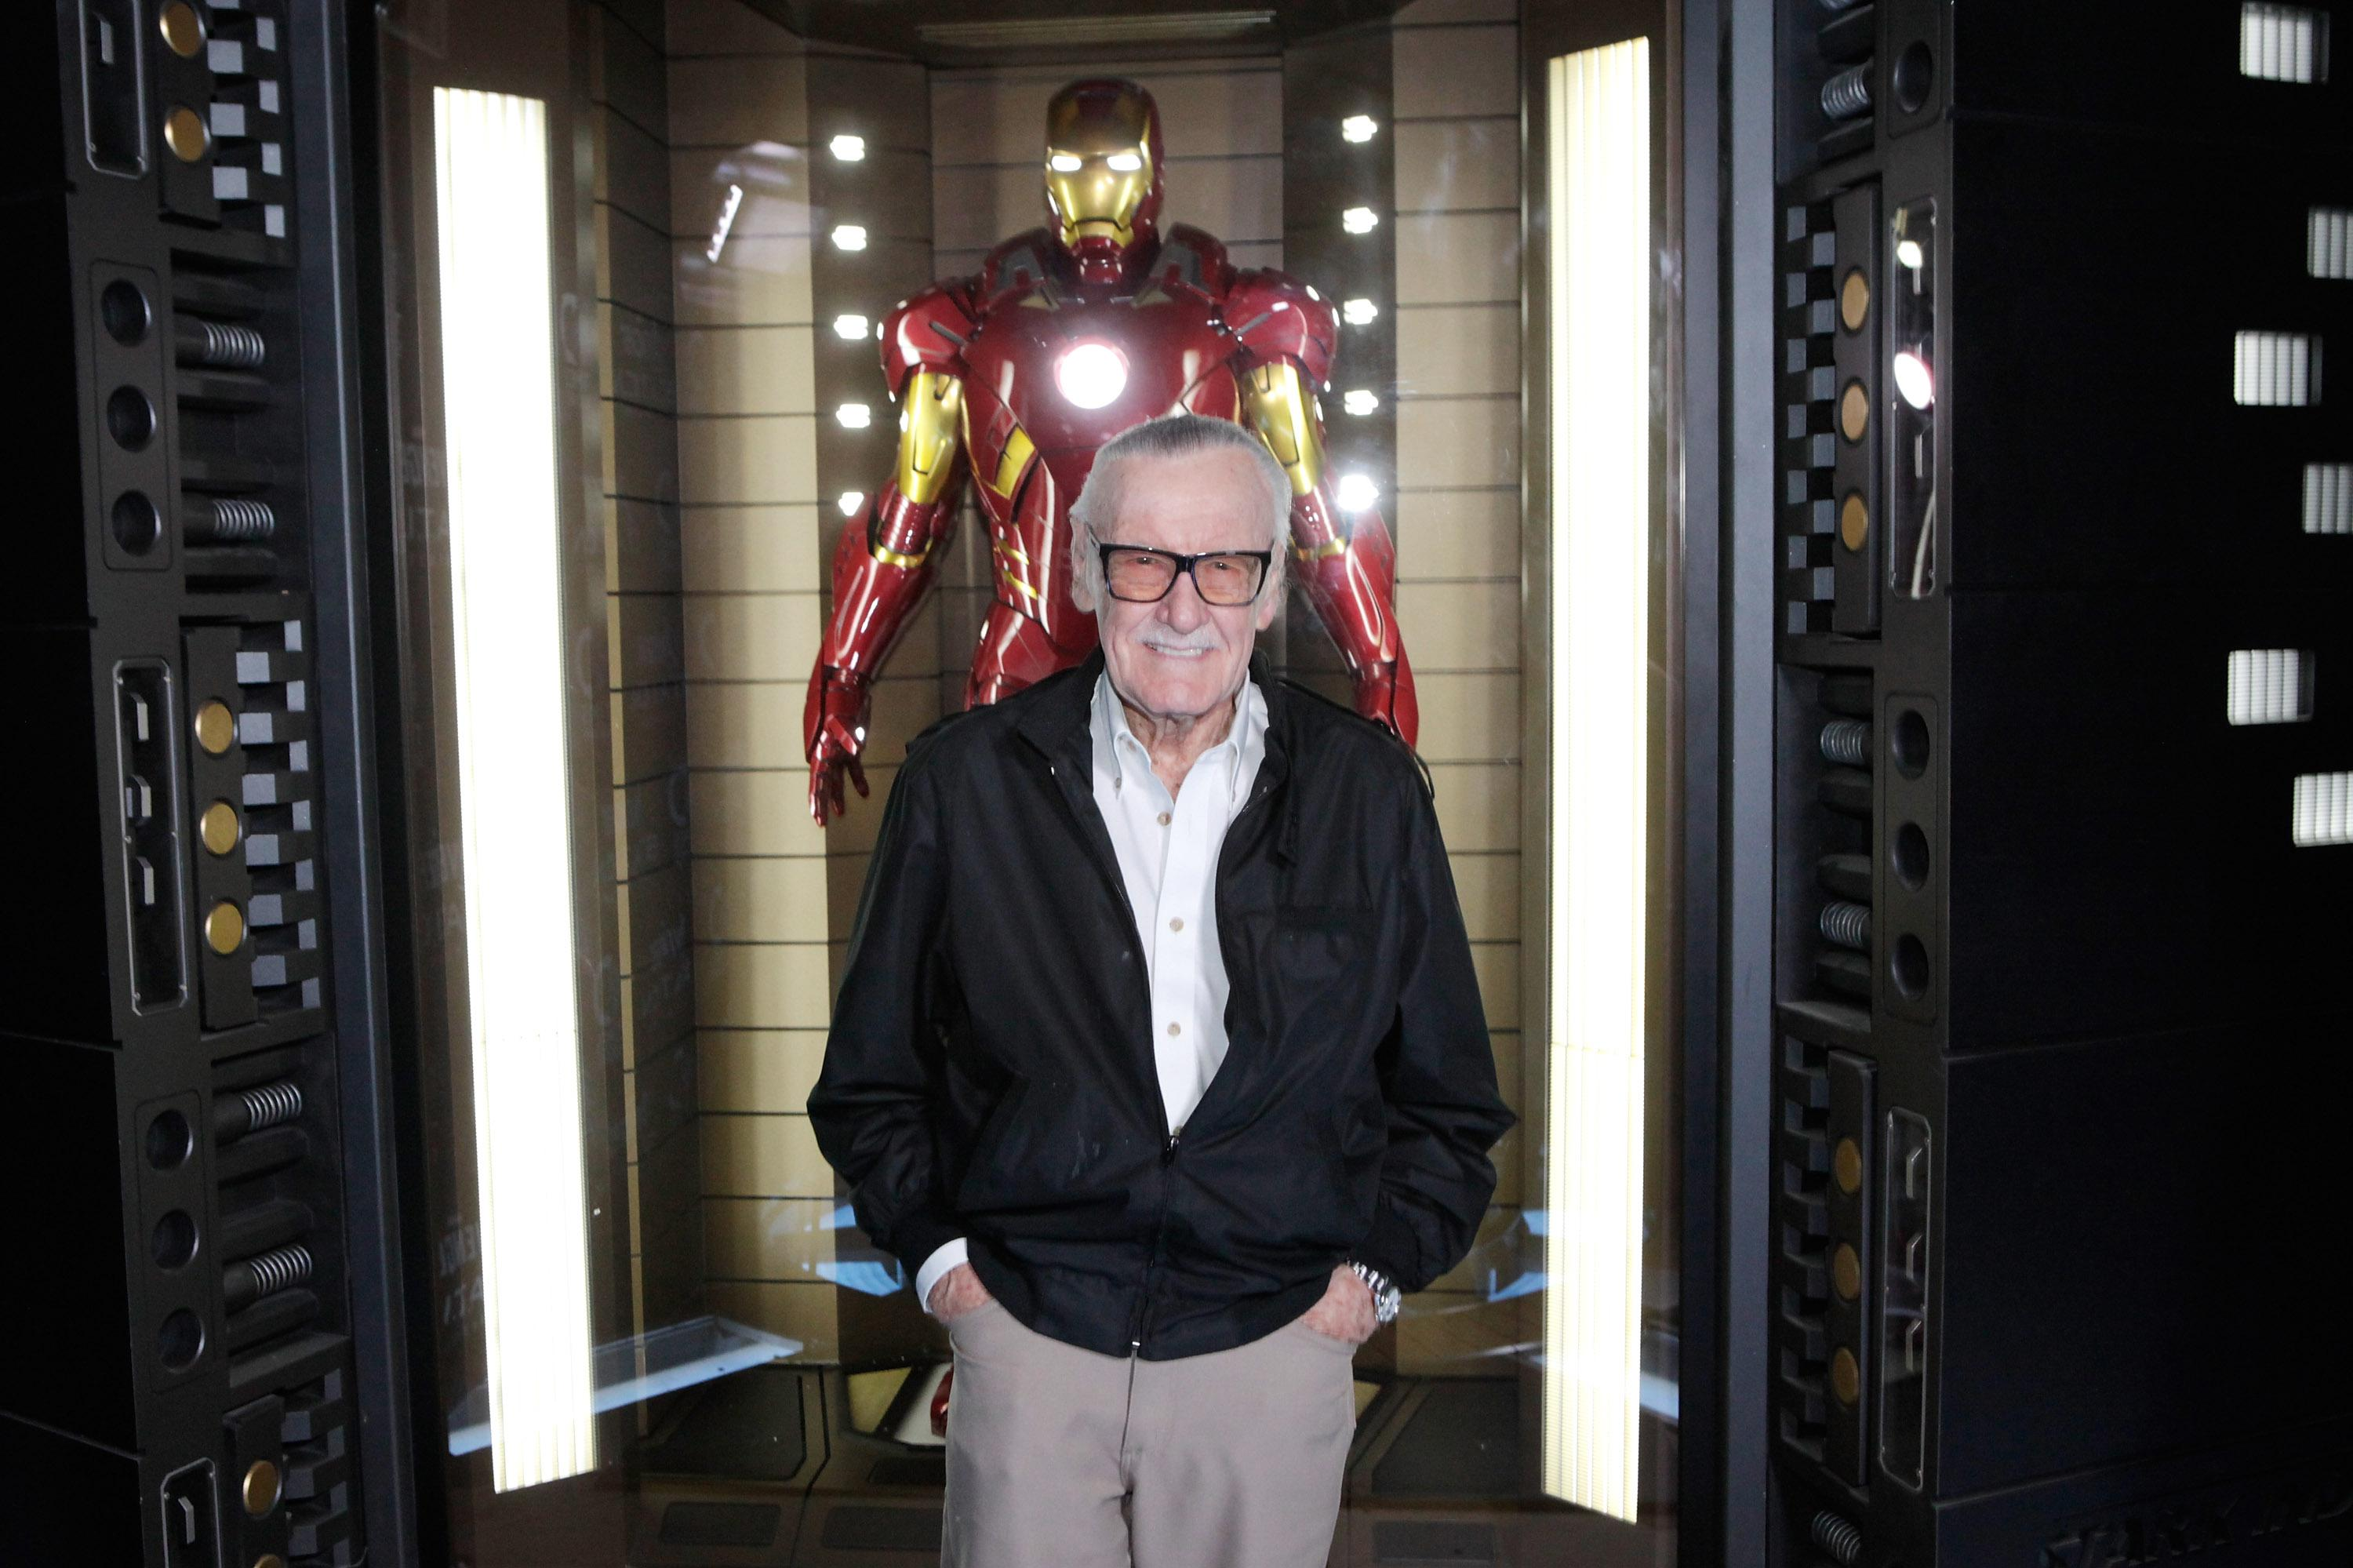 Stan Lee Welcomes Marvel's Avengers S.T.A.T.I.O.N. Exhibition at Discovery Times Square